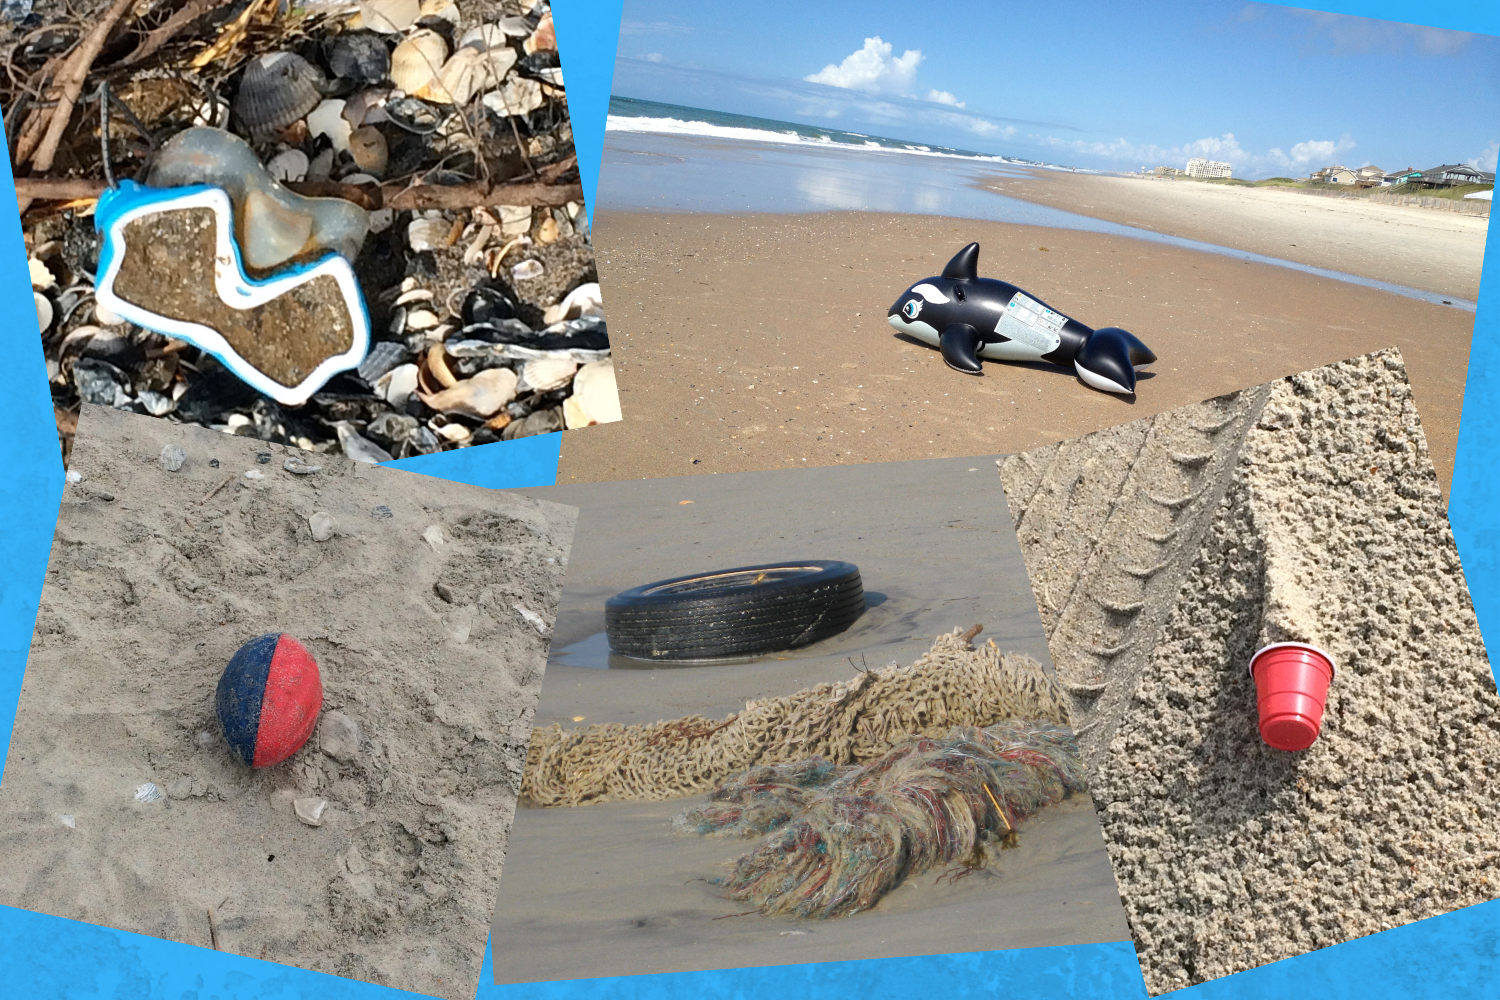 """This image entails a photo collage of items found on a North Carolina beach, as well as the text of a poem called """"Saturday Left Behind."""" Dee Strbling is the poet and the photographer. The poem follows: SATURDAY LEFT BEHIND Sound laps soft at waters edge, gentle waves touch morning's shore. Egret and heron with lifted legs watch for tiniest sand cloud stir and puff. Crab awakens peeking out, says the night was long and full of stars. All peace reigns on this lost cove where hand-hewn oar washed up years ago. Remnants of fisherman's shack now tilt toward sound, expect boat's return. No fisherman hands now row, only island oaks tangle with briars and grass. Distant sounds and diesel smells float across water calm and smooth. Wind pushes remnants of someone's Saturday wrapped in plastic sails. Tiny rafts of color, red from a kid's balloon, bits of line, die in tangled mess. Gull pays slight attention as these gifts bob and pitch onto white linen shore. Scattered about they lie exposed, wait to be picked up and used again. Osprey cry stirs air, brings back the wind, buries all abandoned at tide's door."""